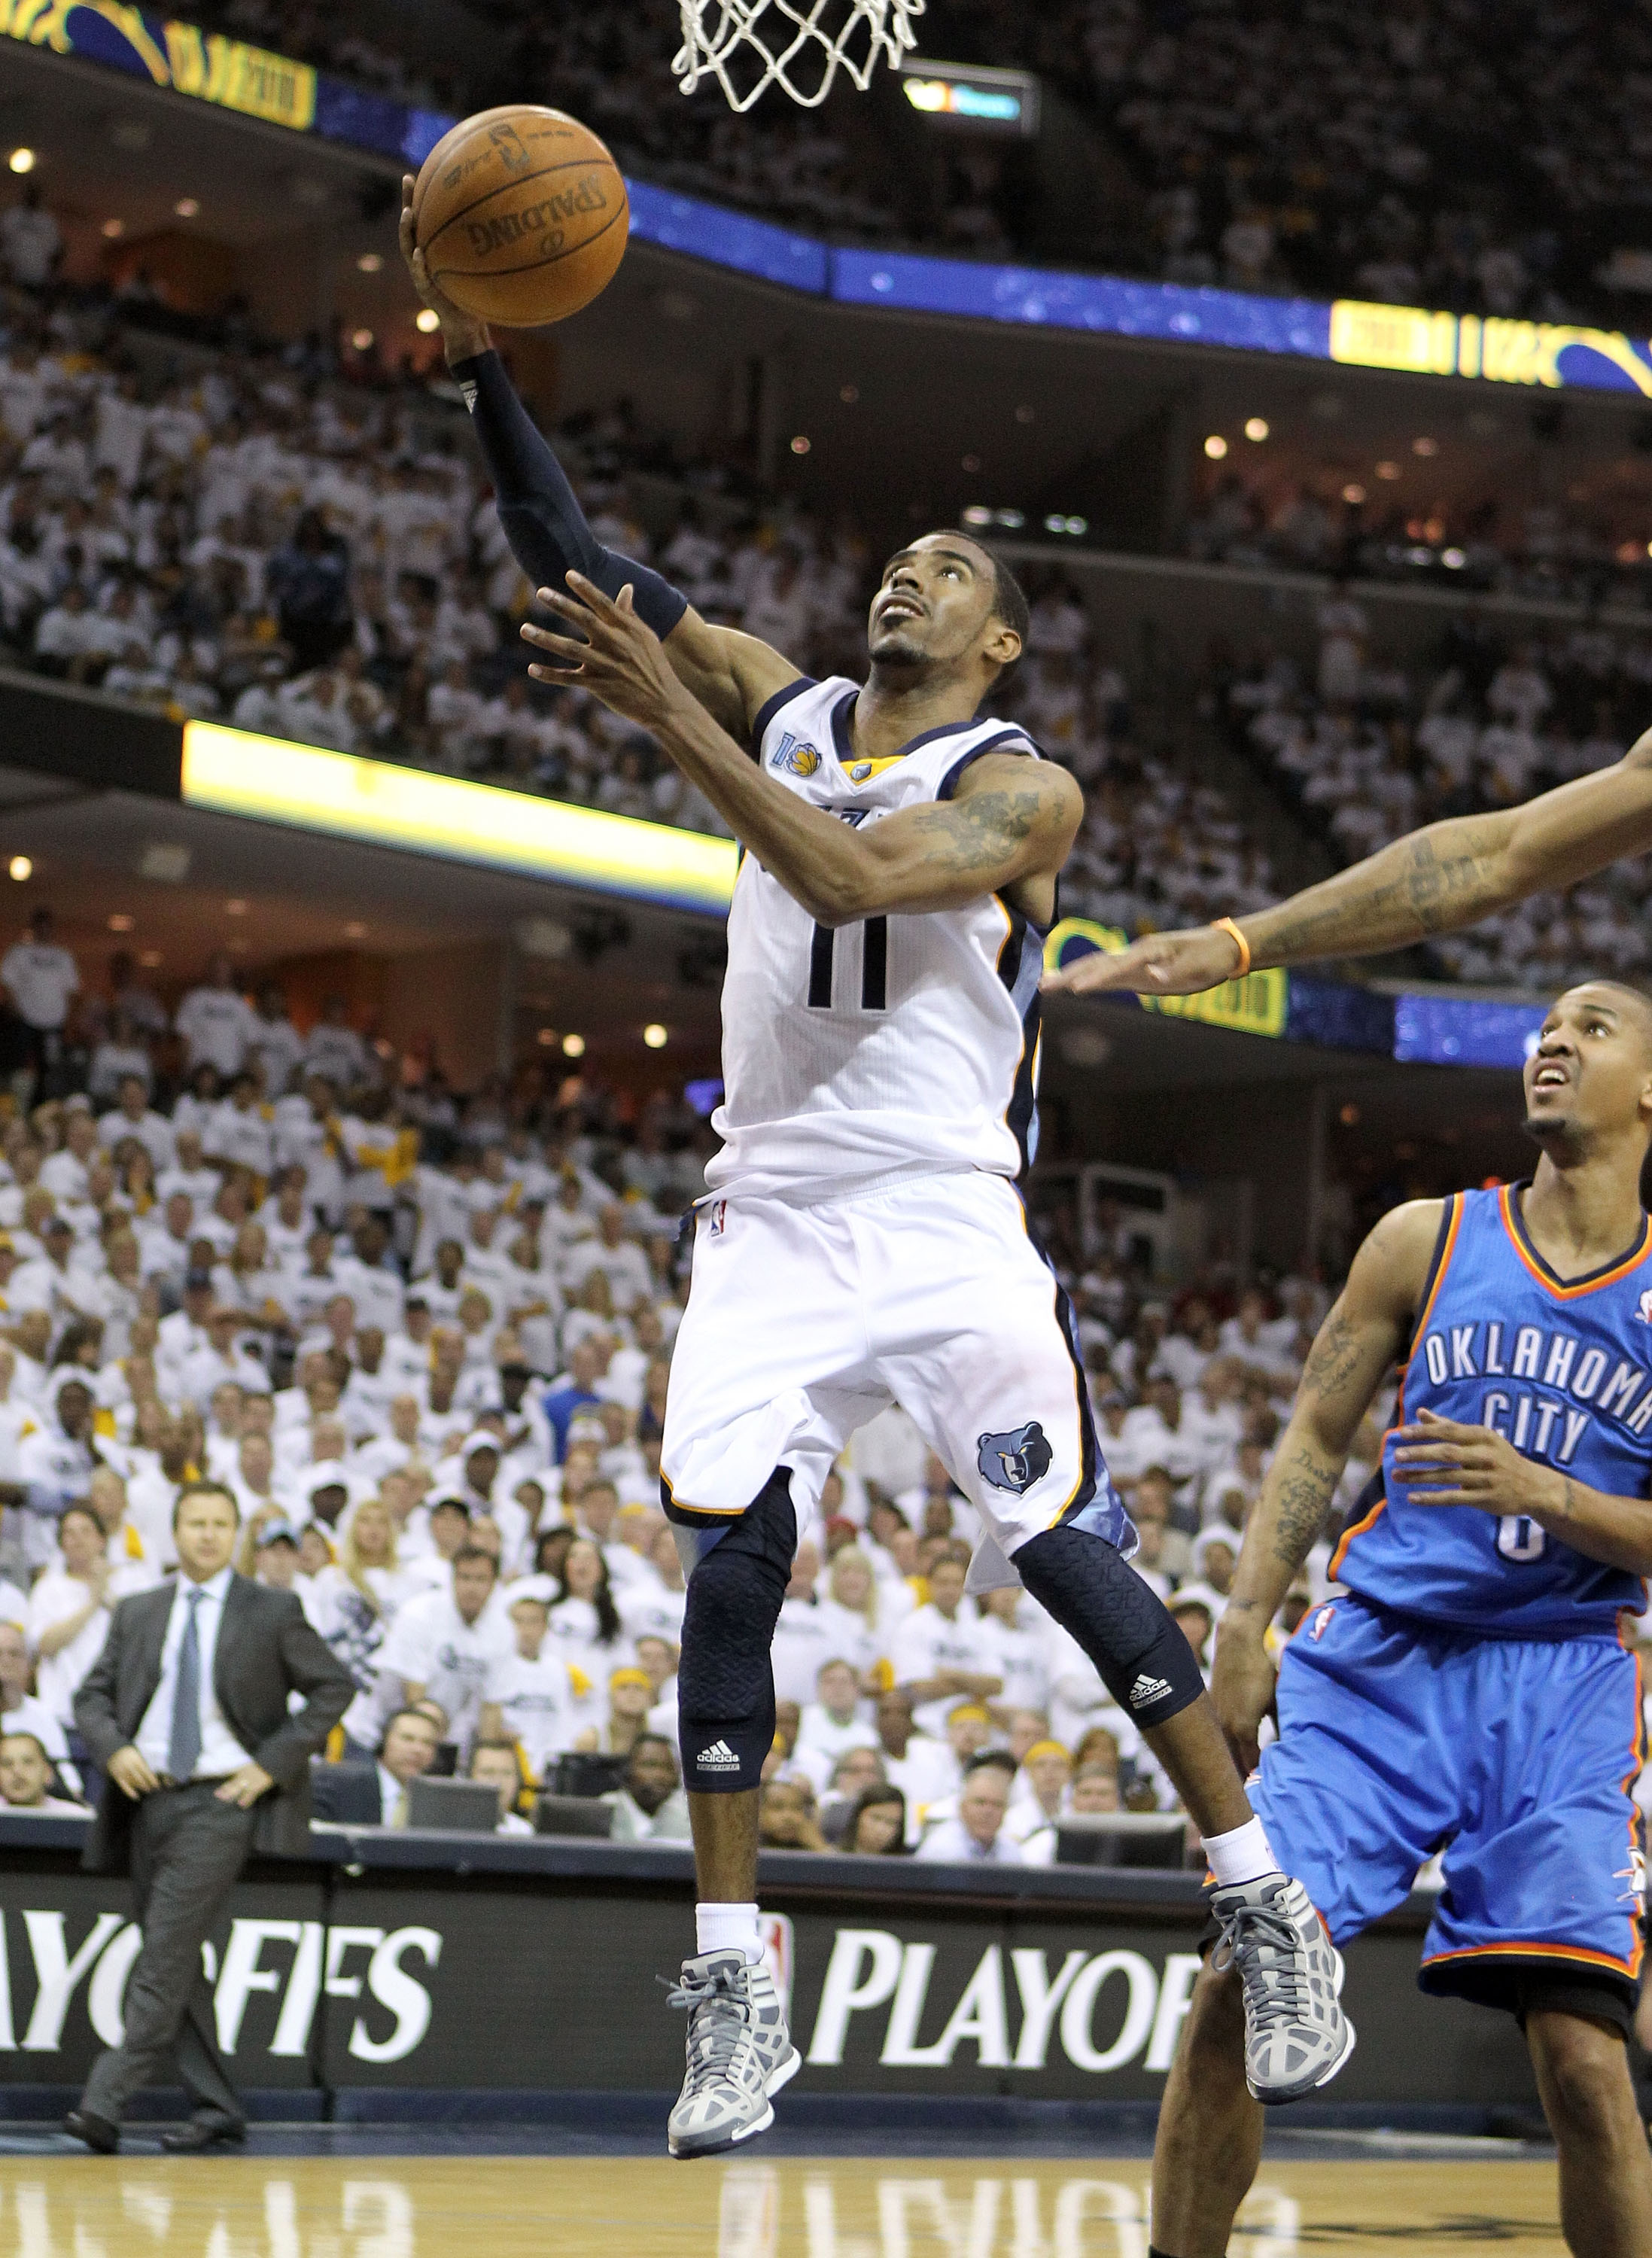 MEMPHIS, TN - MAY 07:  Mike Conley #11 of the  Memphis Grizzlies shoots the ball during the game against the Oklahoma City Thunder in Game Three of the Western Conference Semifinals in the 2011 NBA Playoffs at FedExForum on May 7, 2011 in Memphis, Tenness